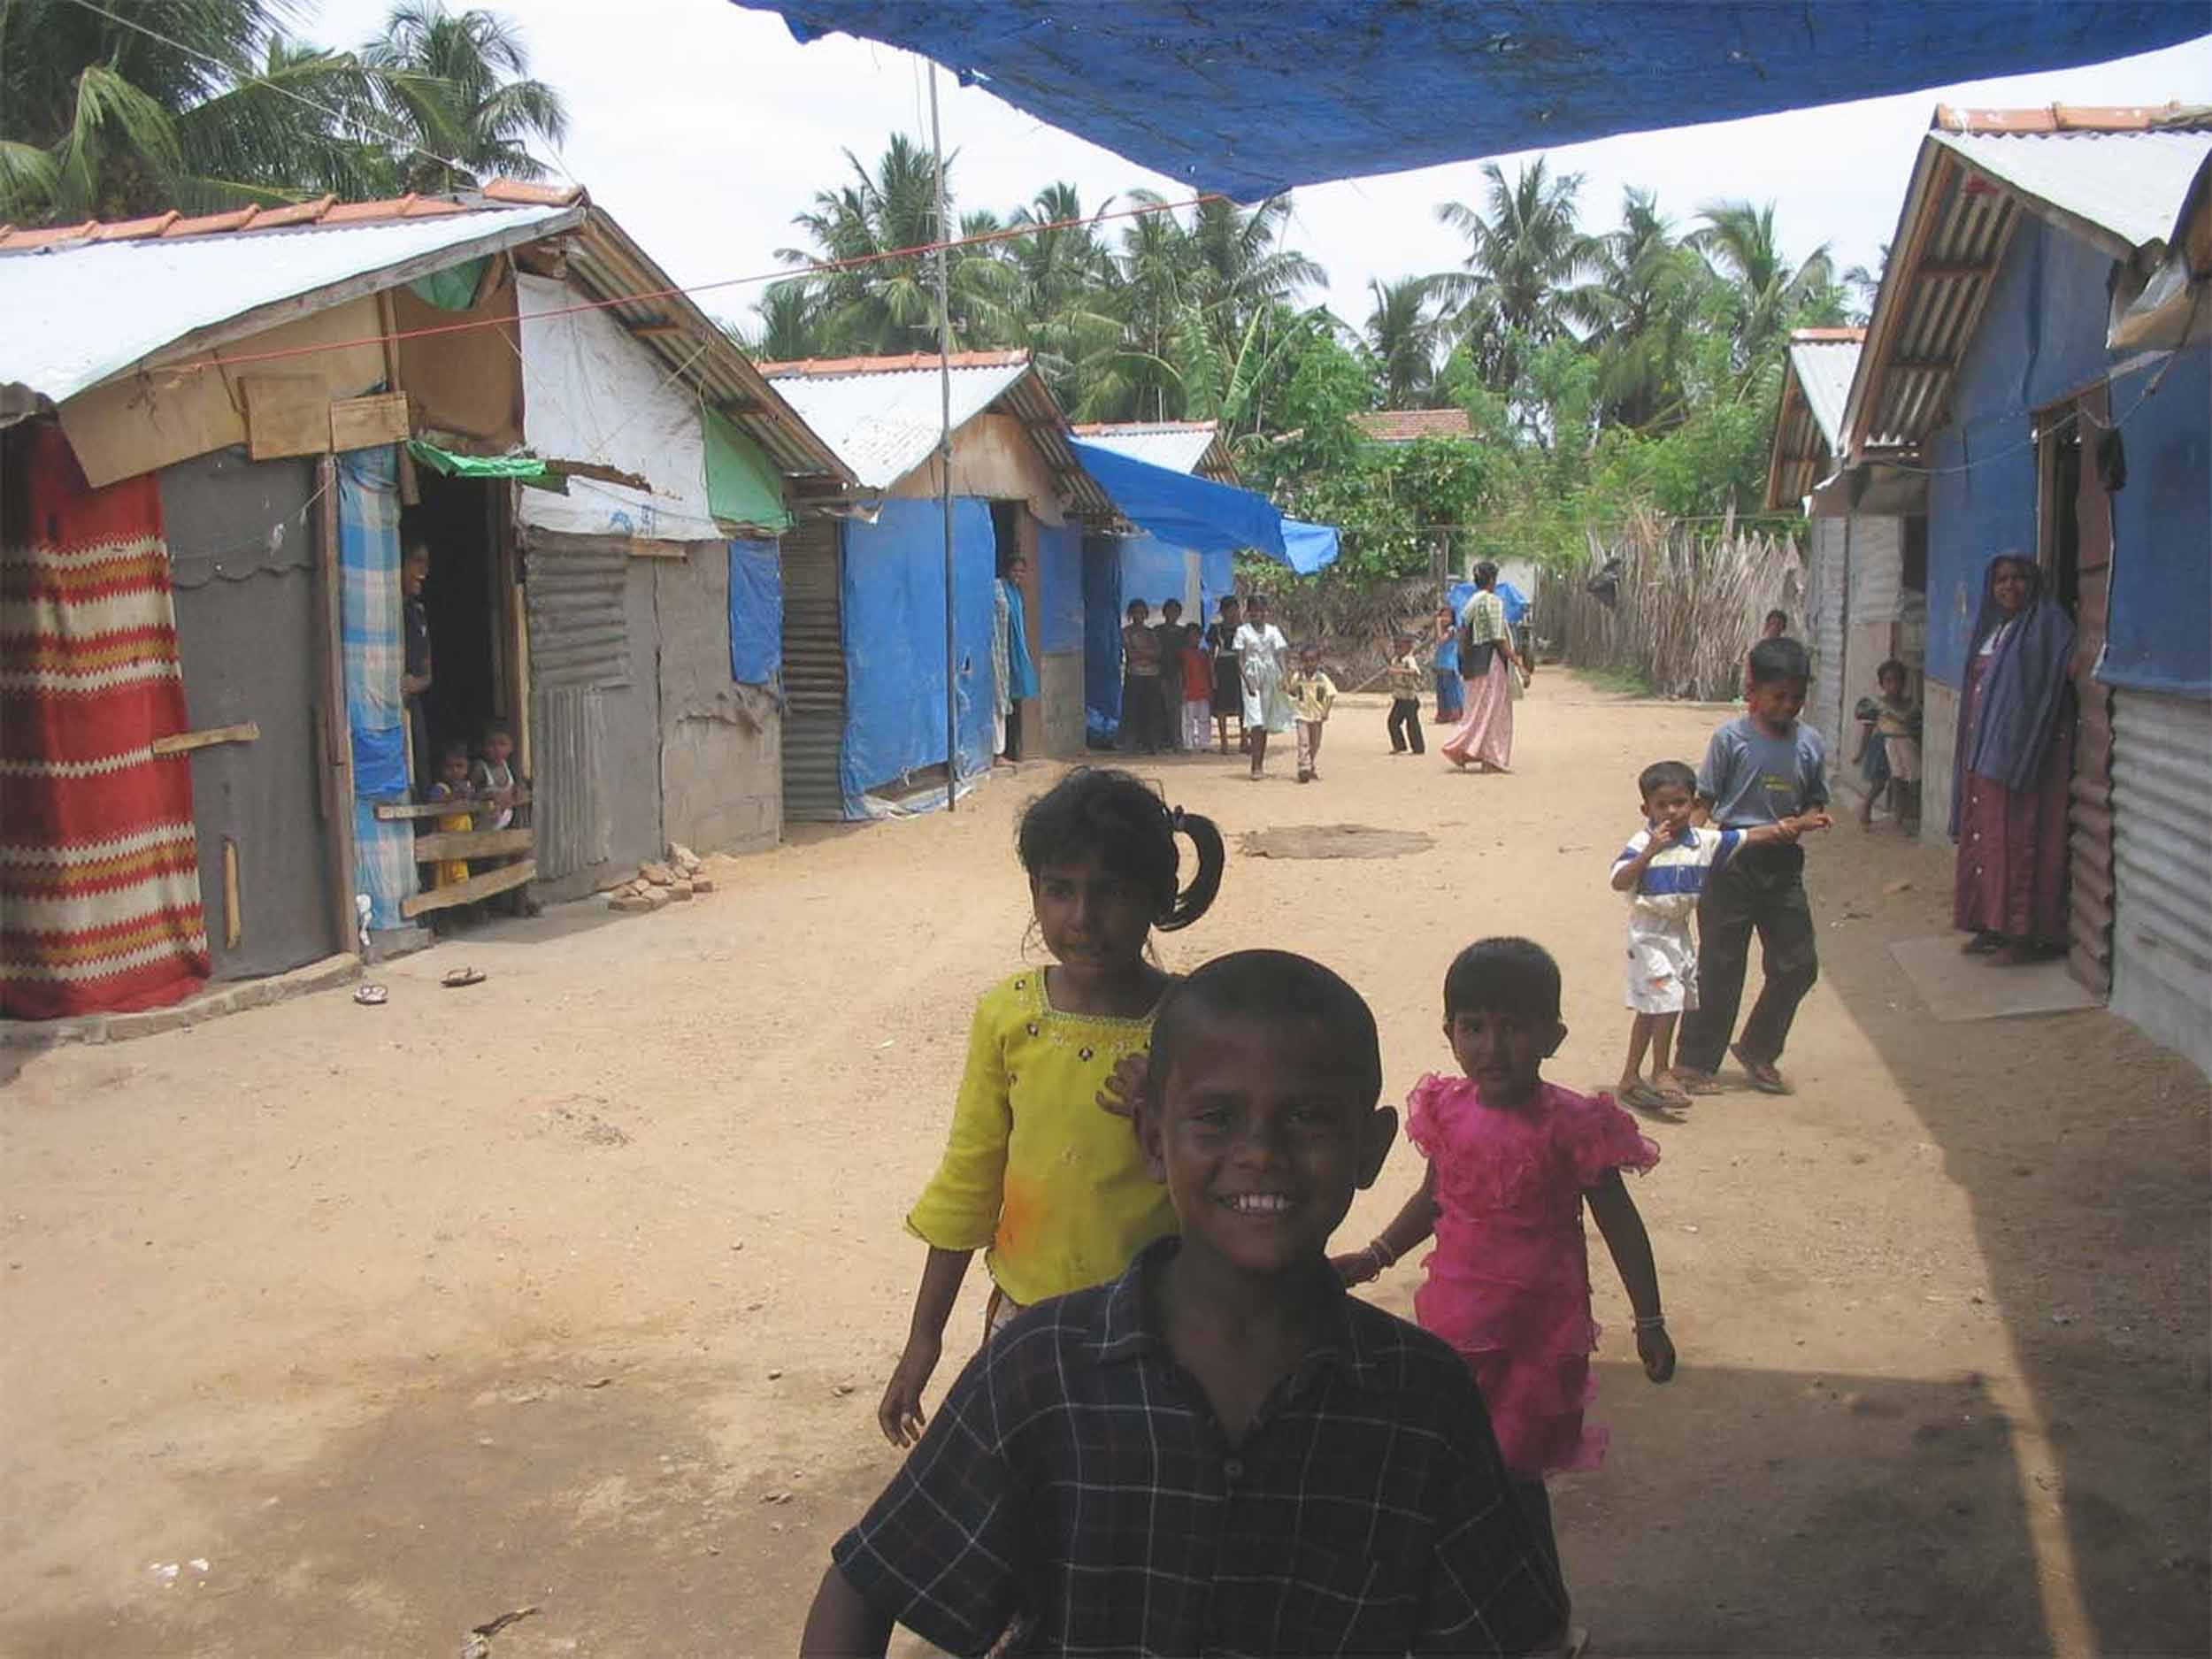 Children at the Jiffrey tsunami shelter in Kalmunai on the east coast of Sri Lanka. For many of them the camp has been home since the 2004 tsunami.